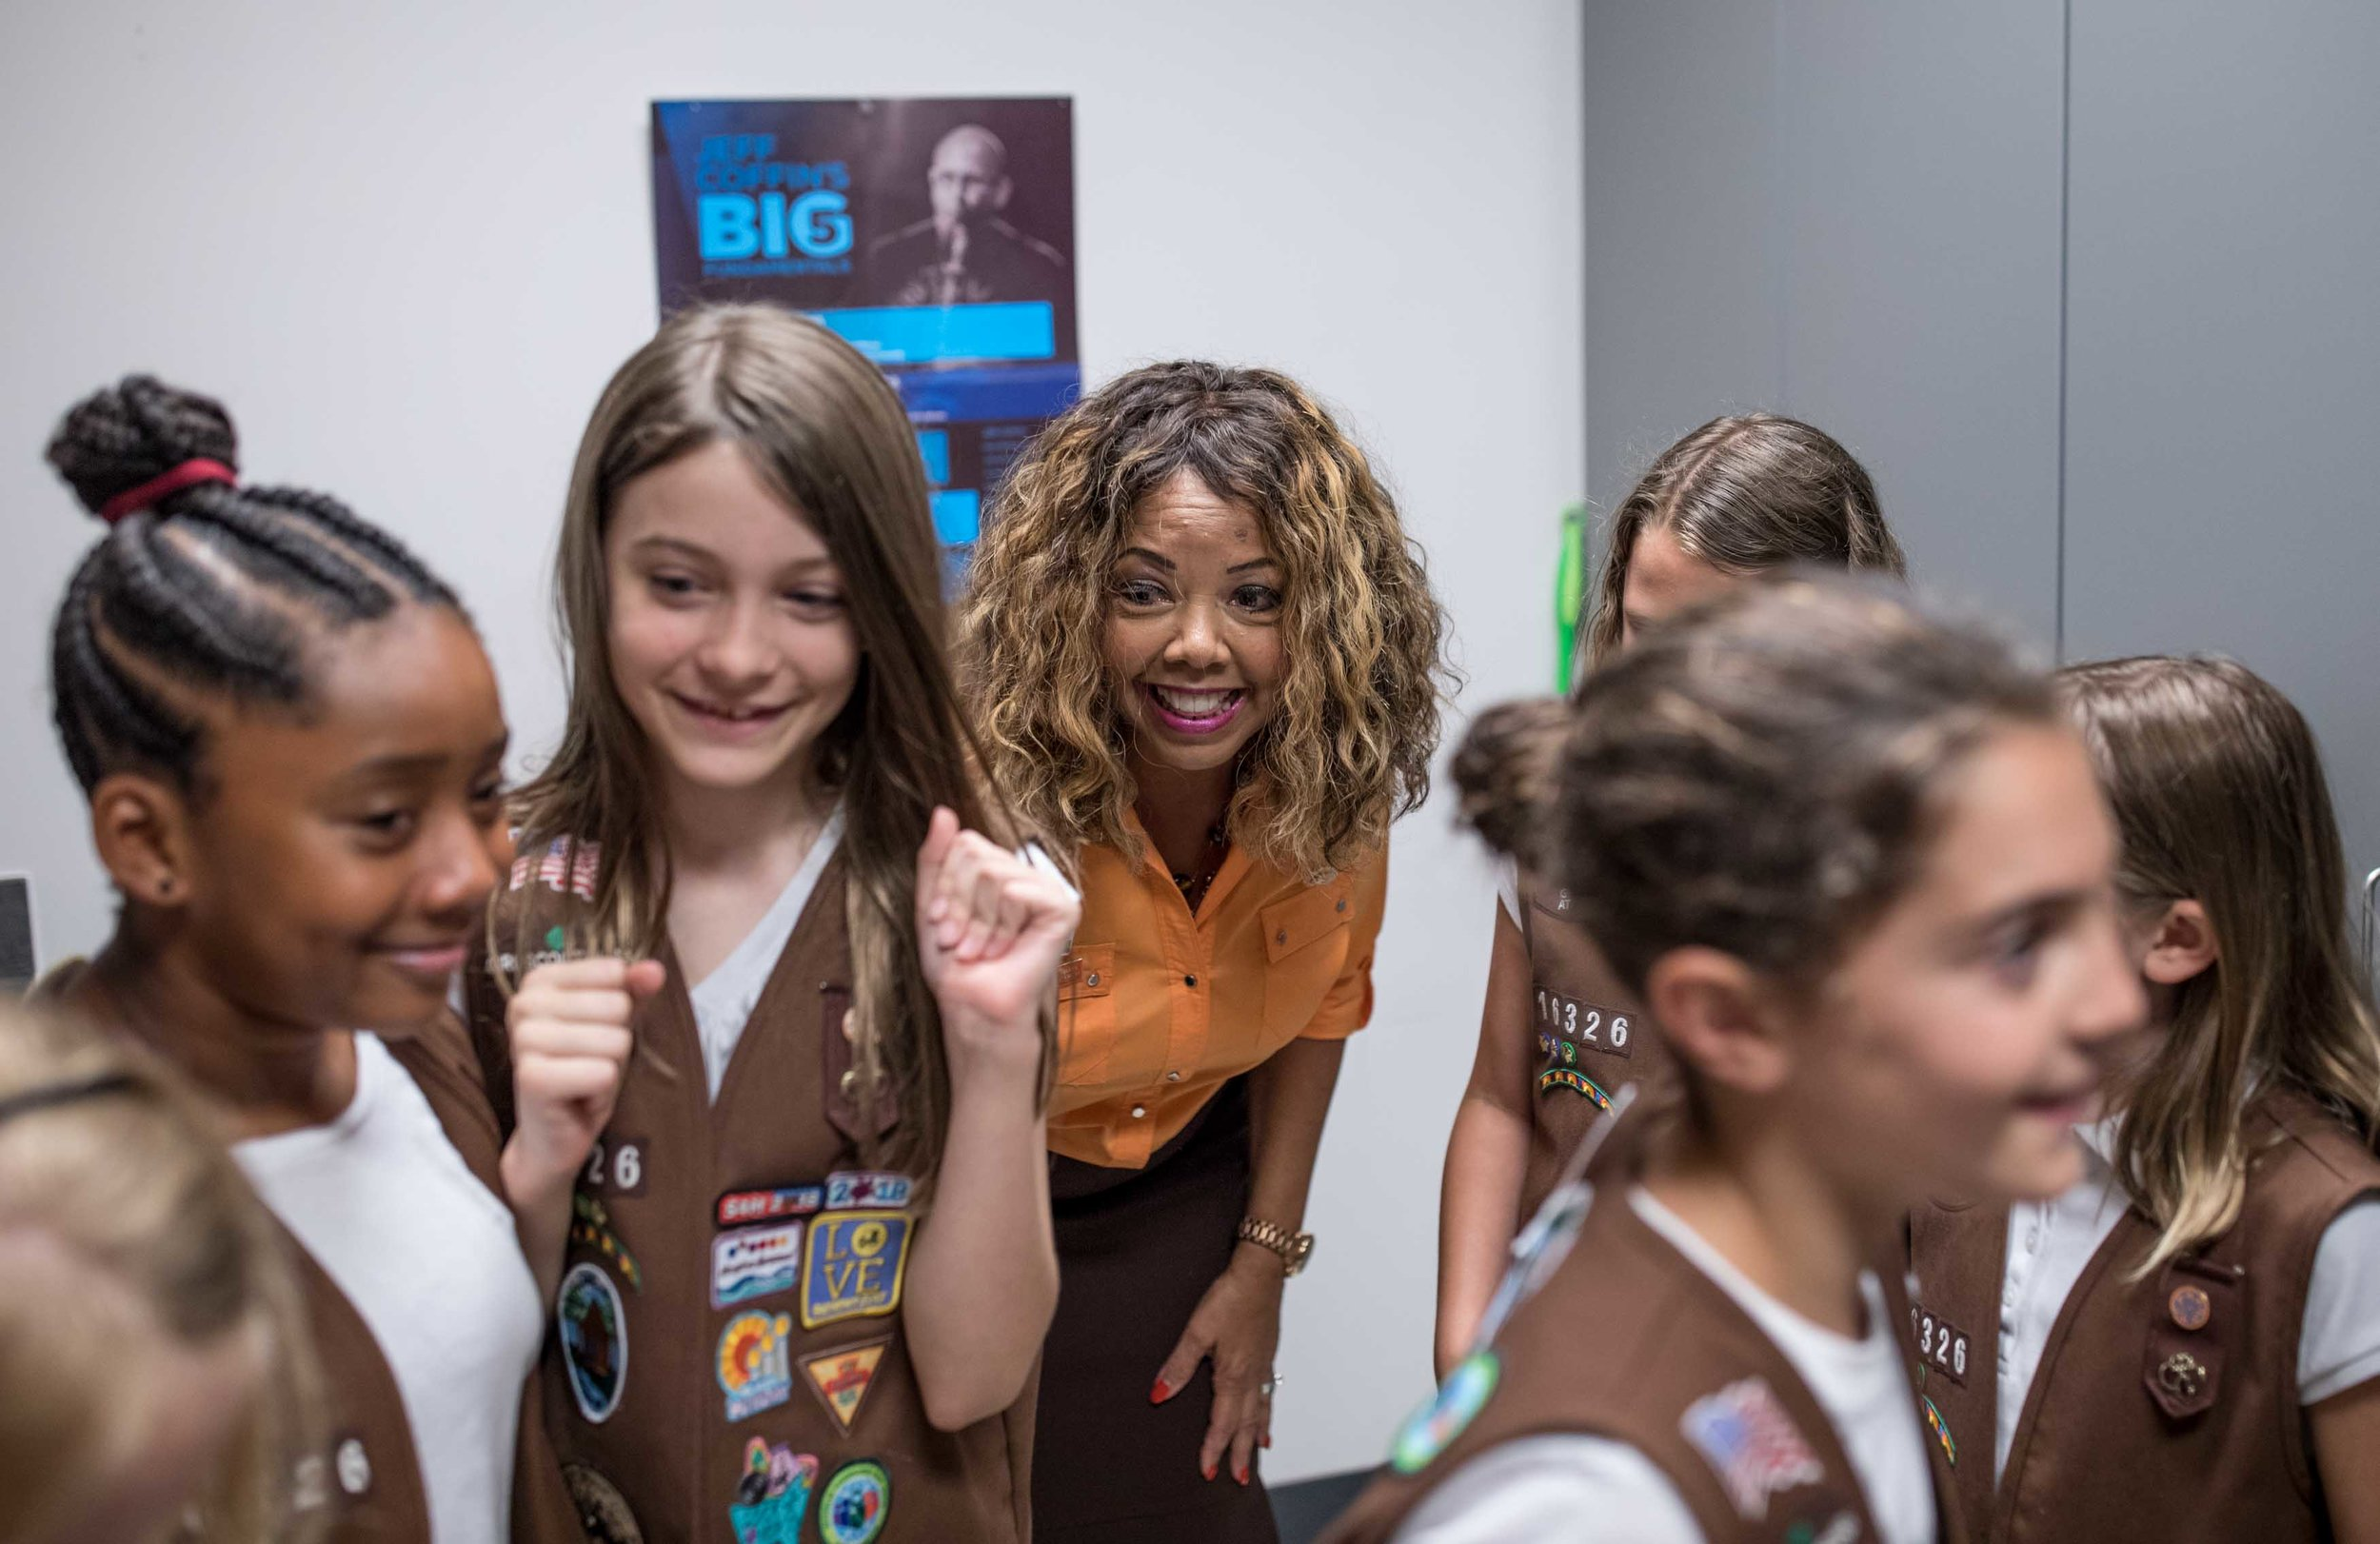 Rep. Lucy McBath, D-Ga., speaks with a group of Girl Scouts before holding a town hall meeting at Dunwoody High School on Saturday, June 8, 2019 in Dunwoody, Ga. Branden Camp for AJC